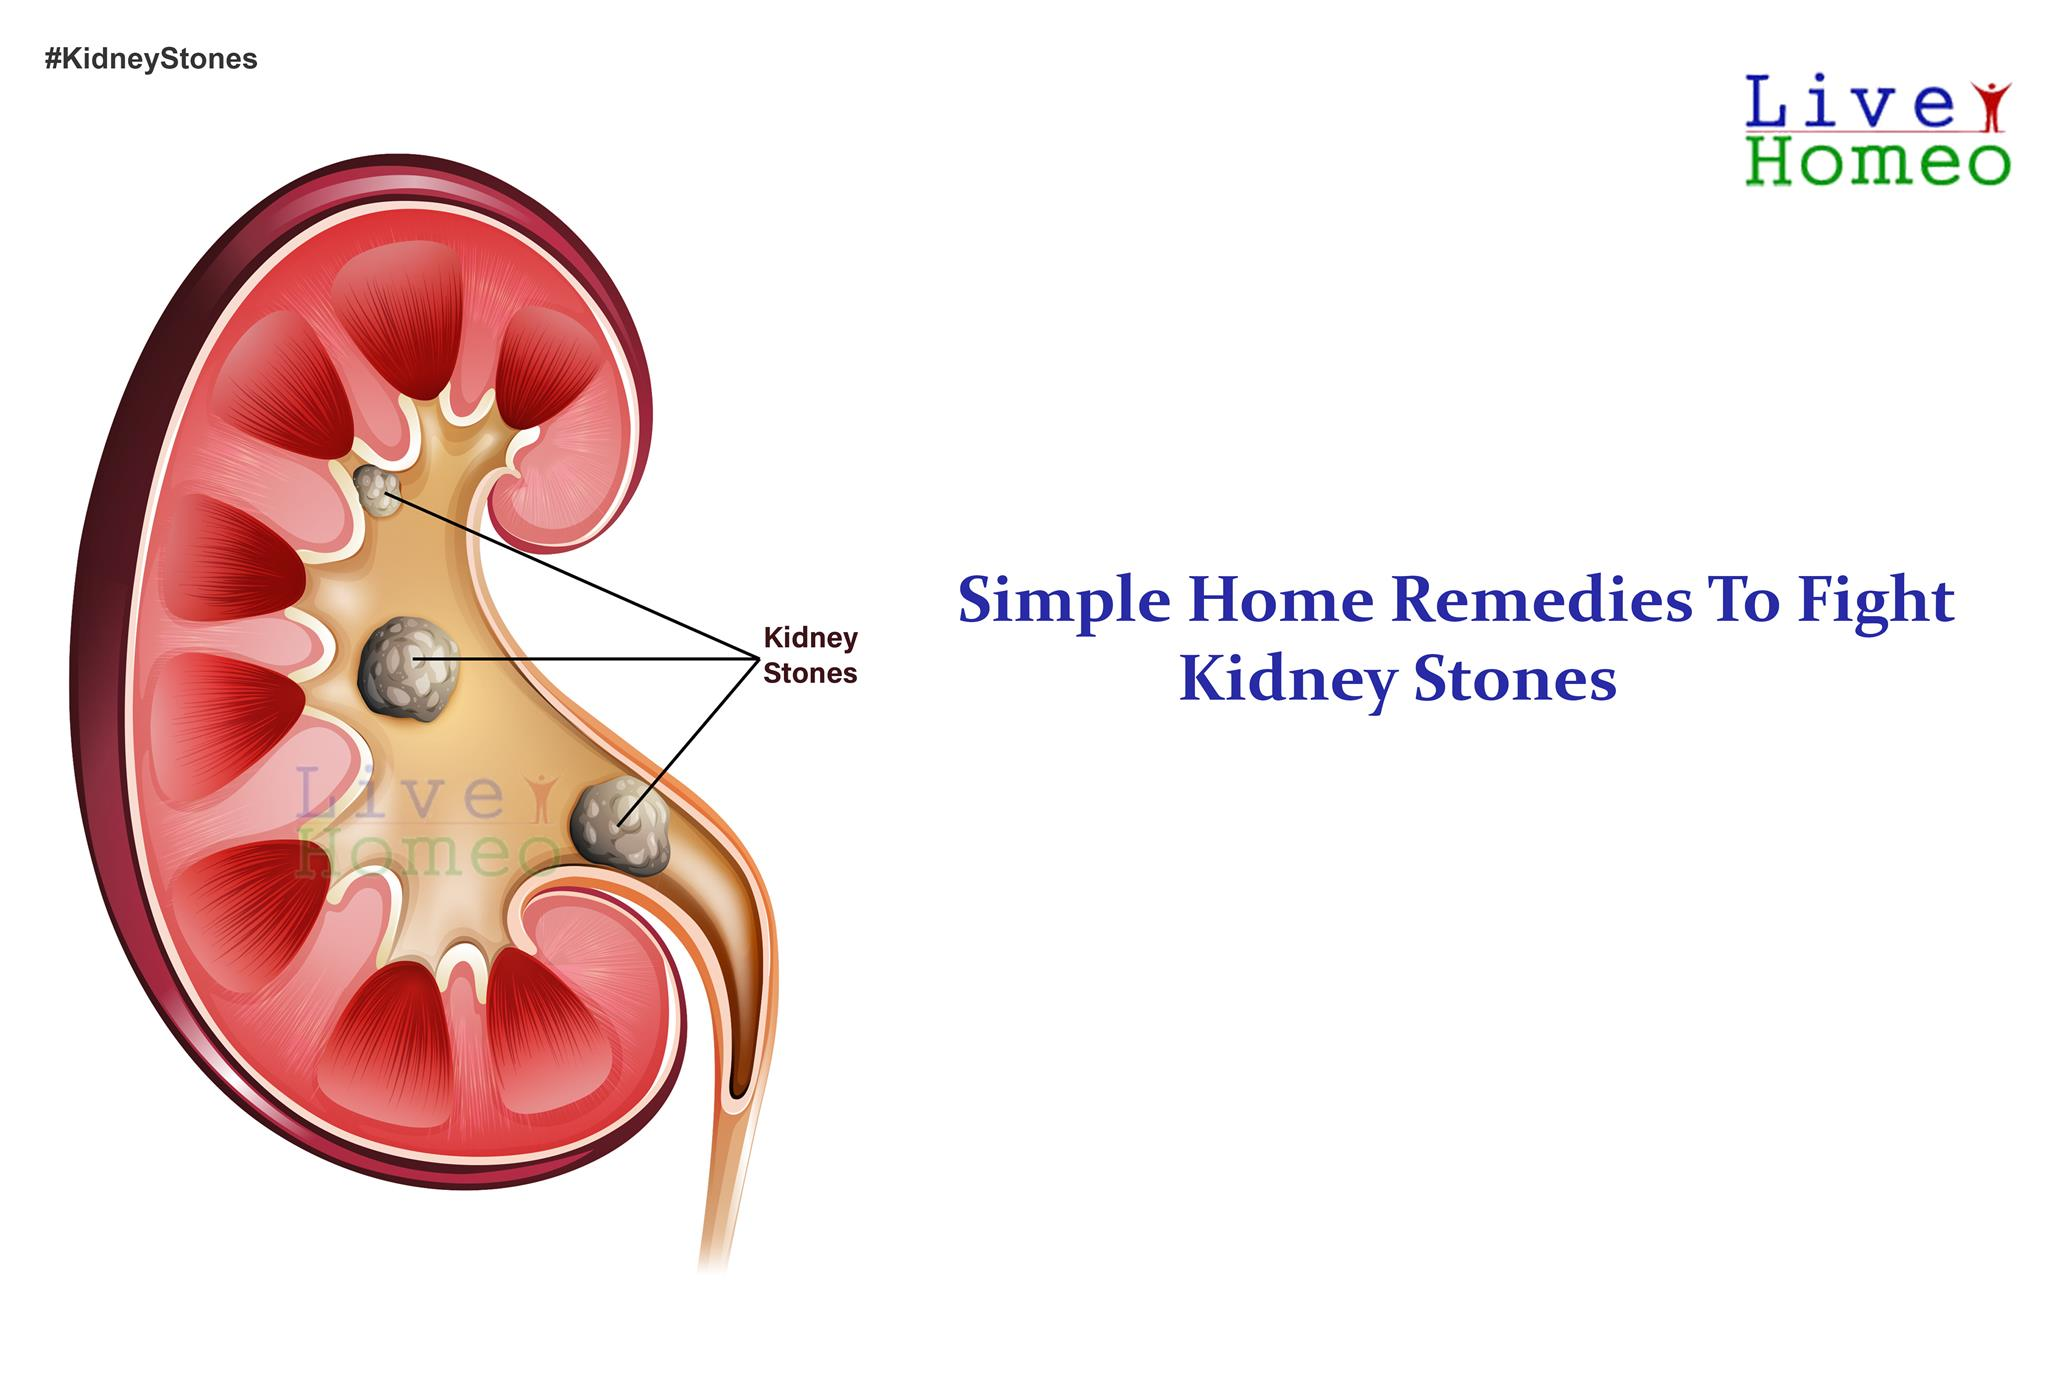 Simple home remedies to figh kidney stones